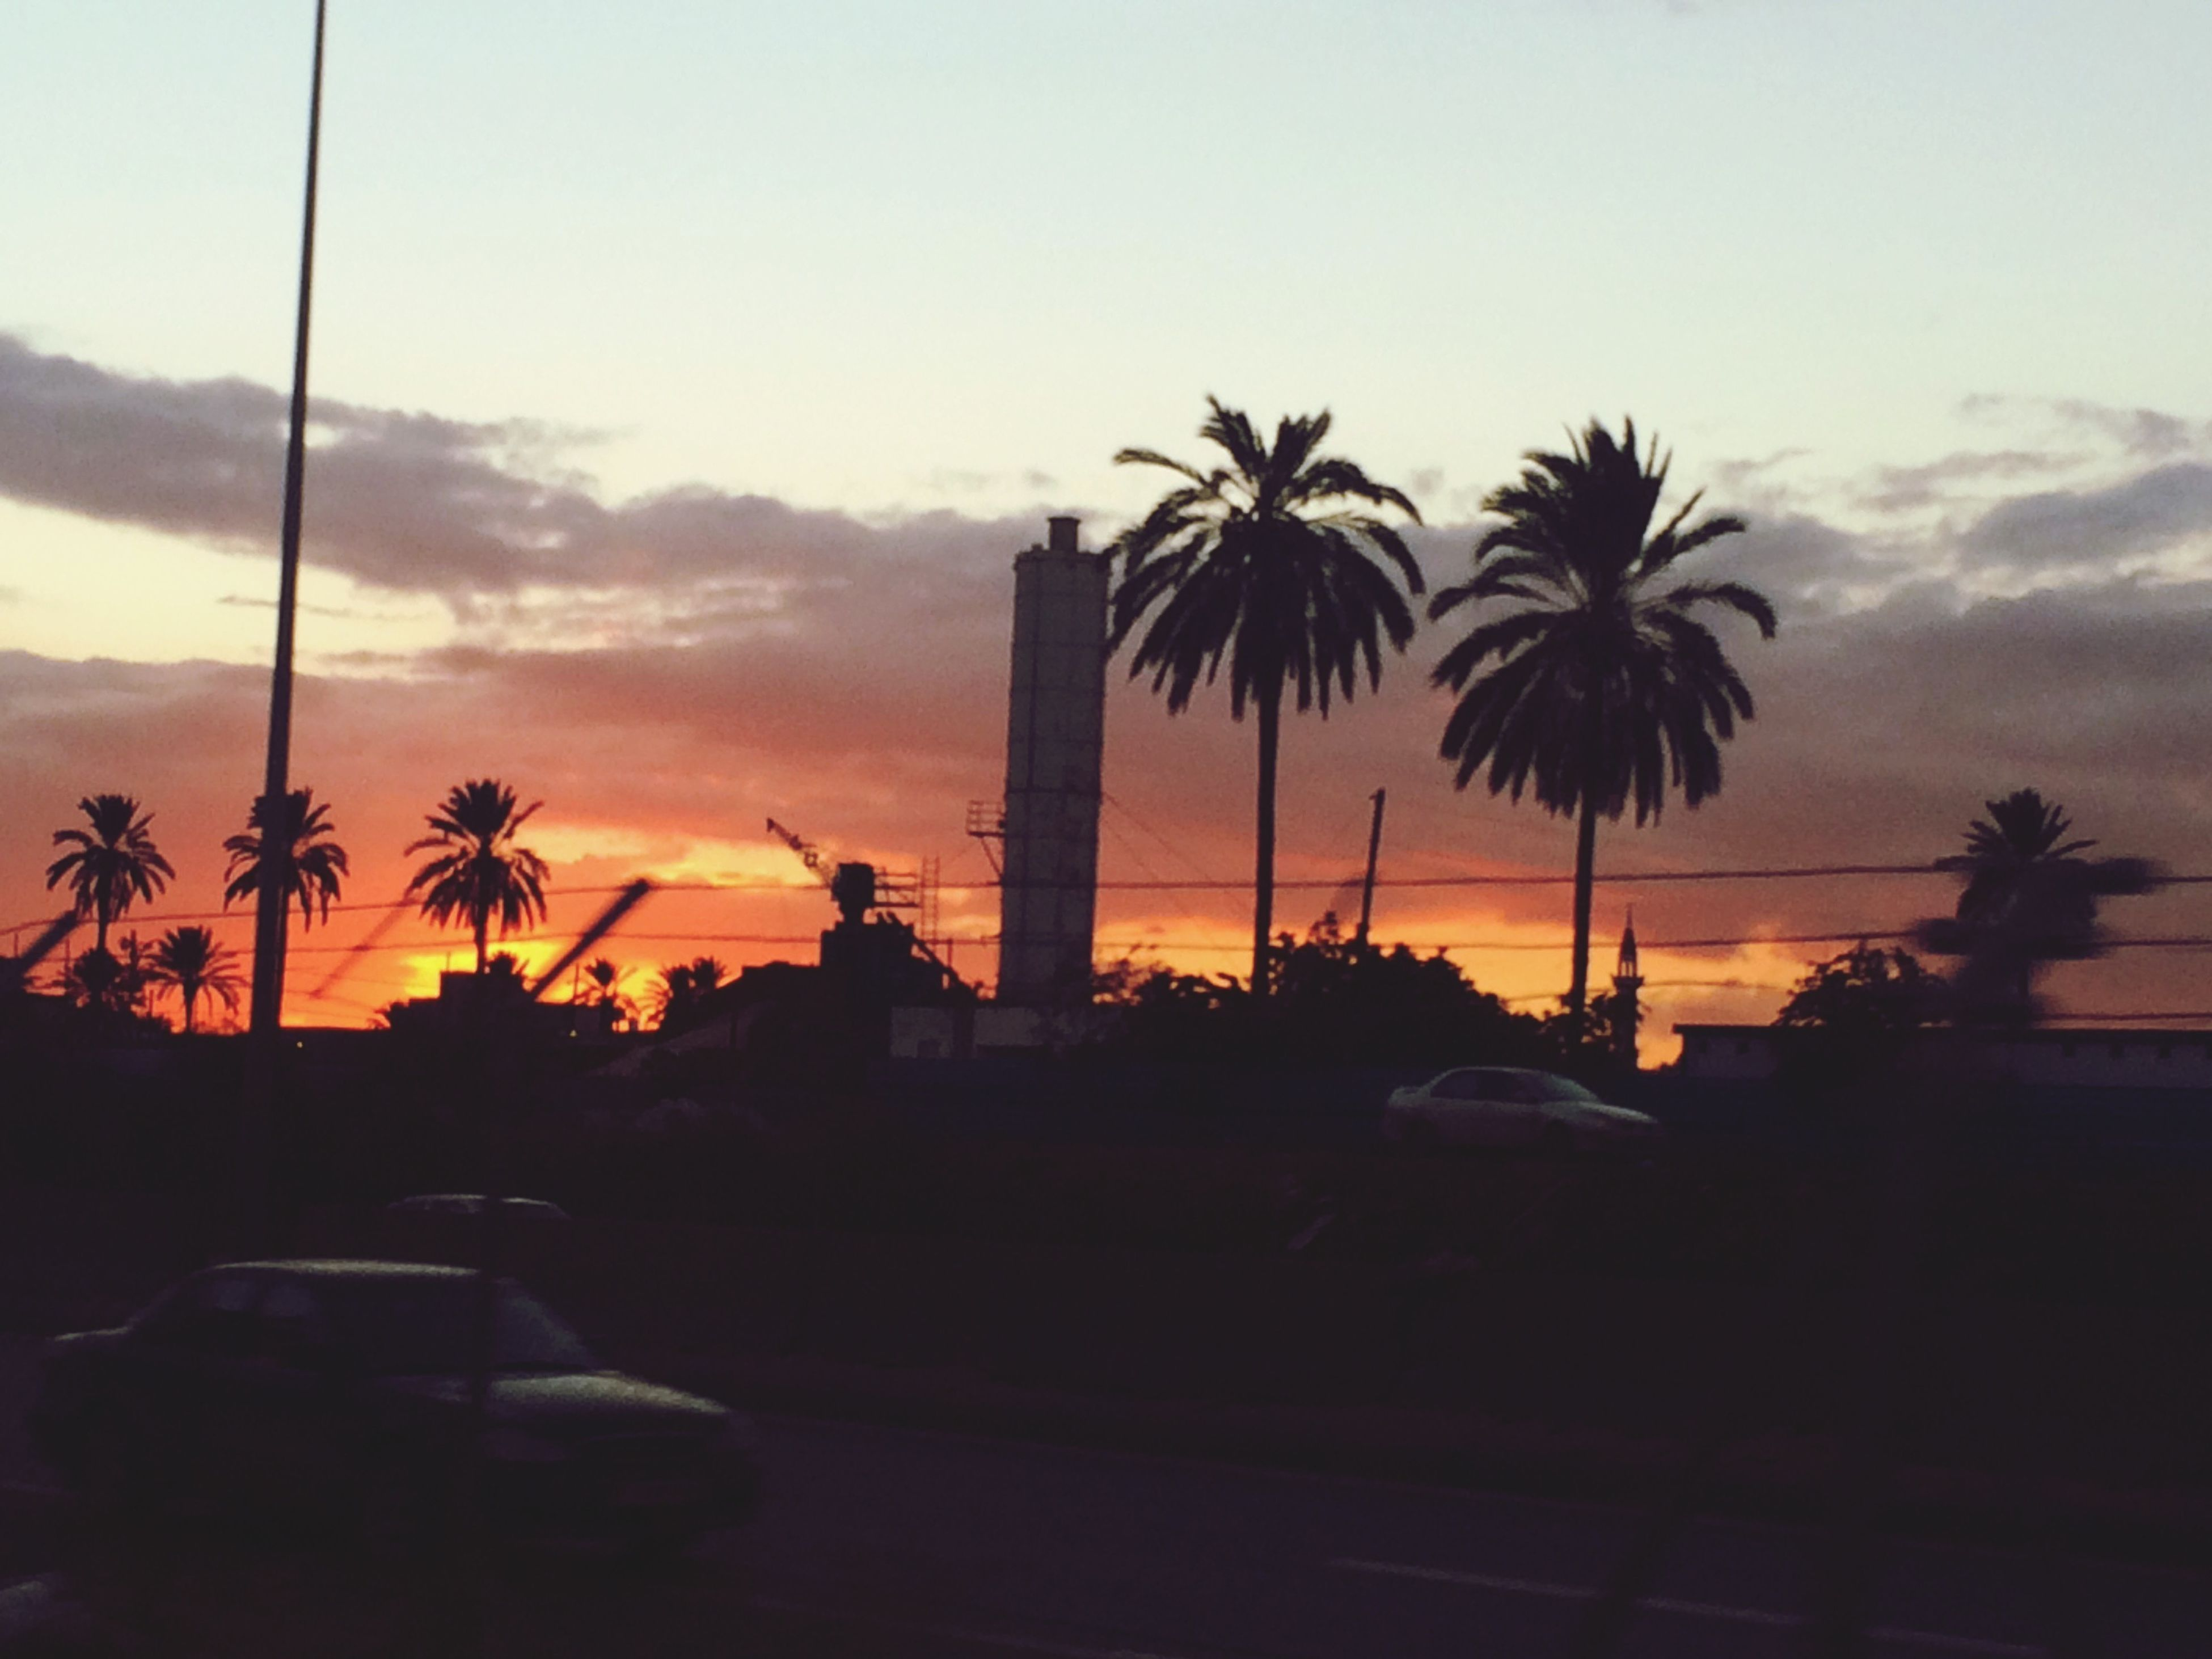 sunset, palm tree, silhouette, sky, car, transportation, land vehicle, mode of transport, tree, road, cloud - sky, orange color, street, nature, dusk, beauty in nature, scenics, cloud, street light, outdoors